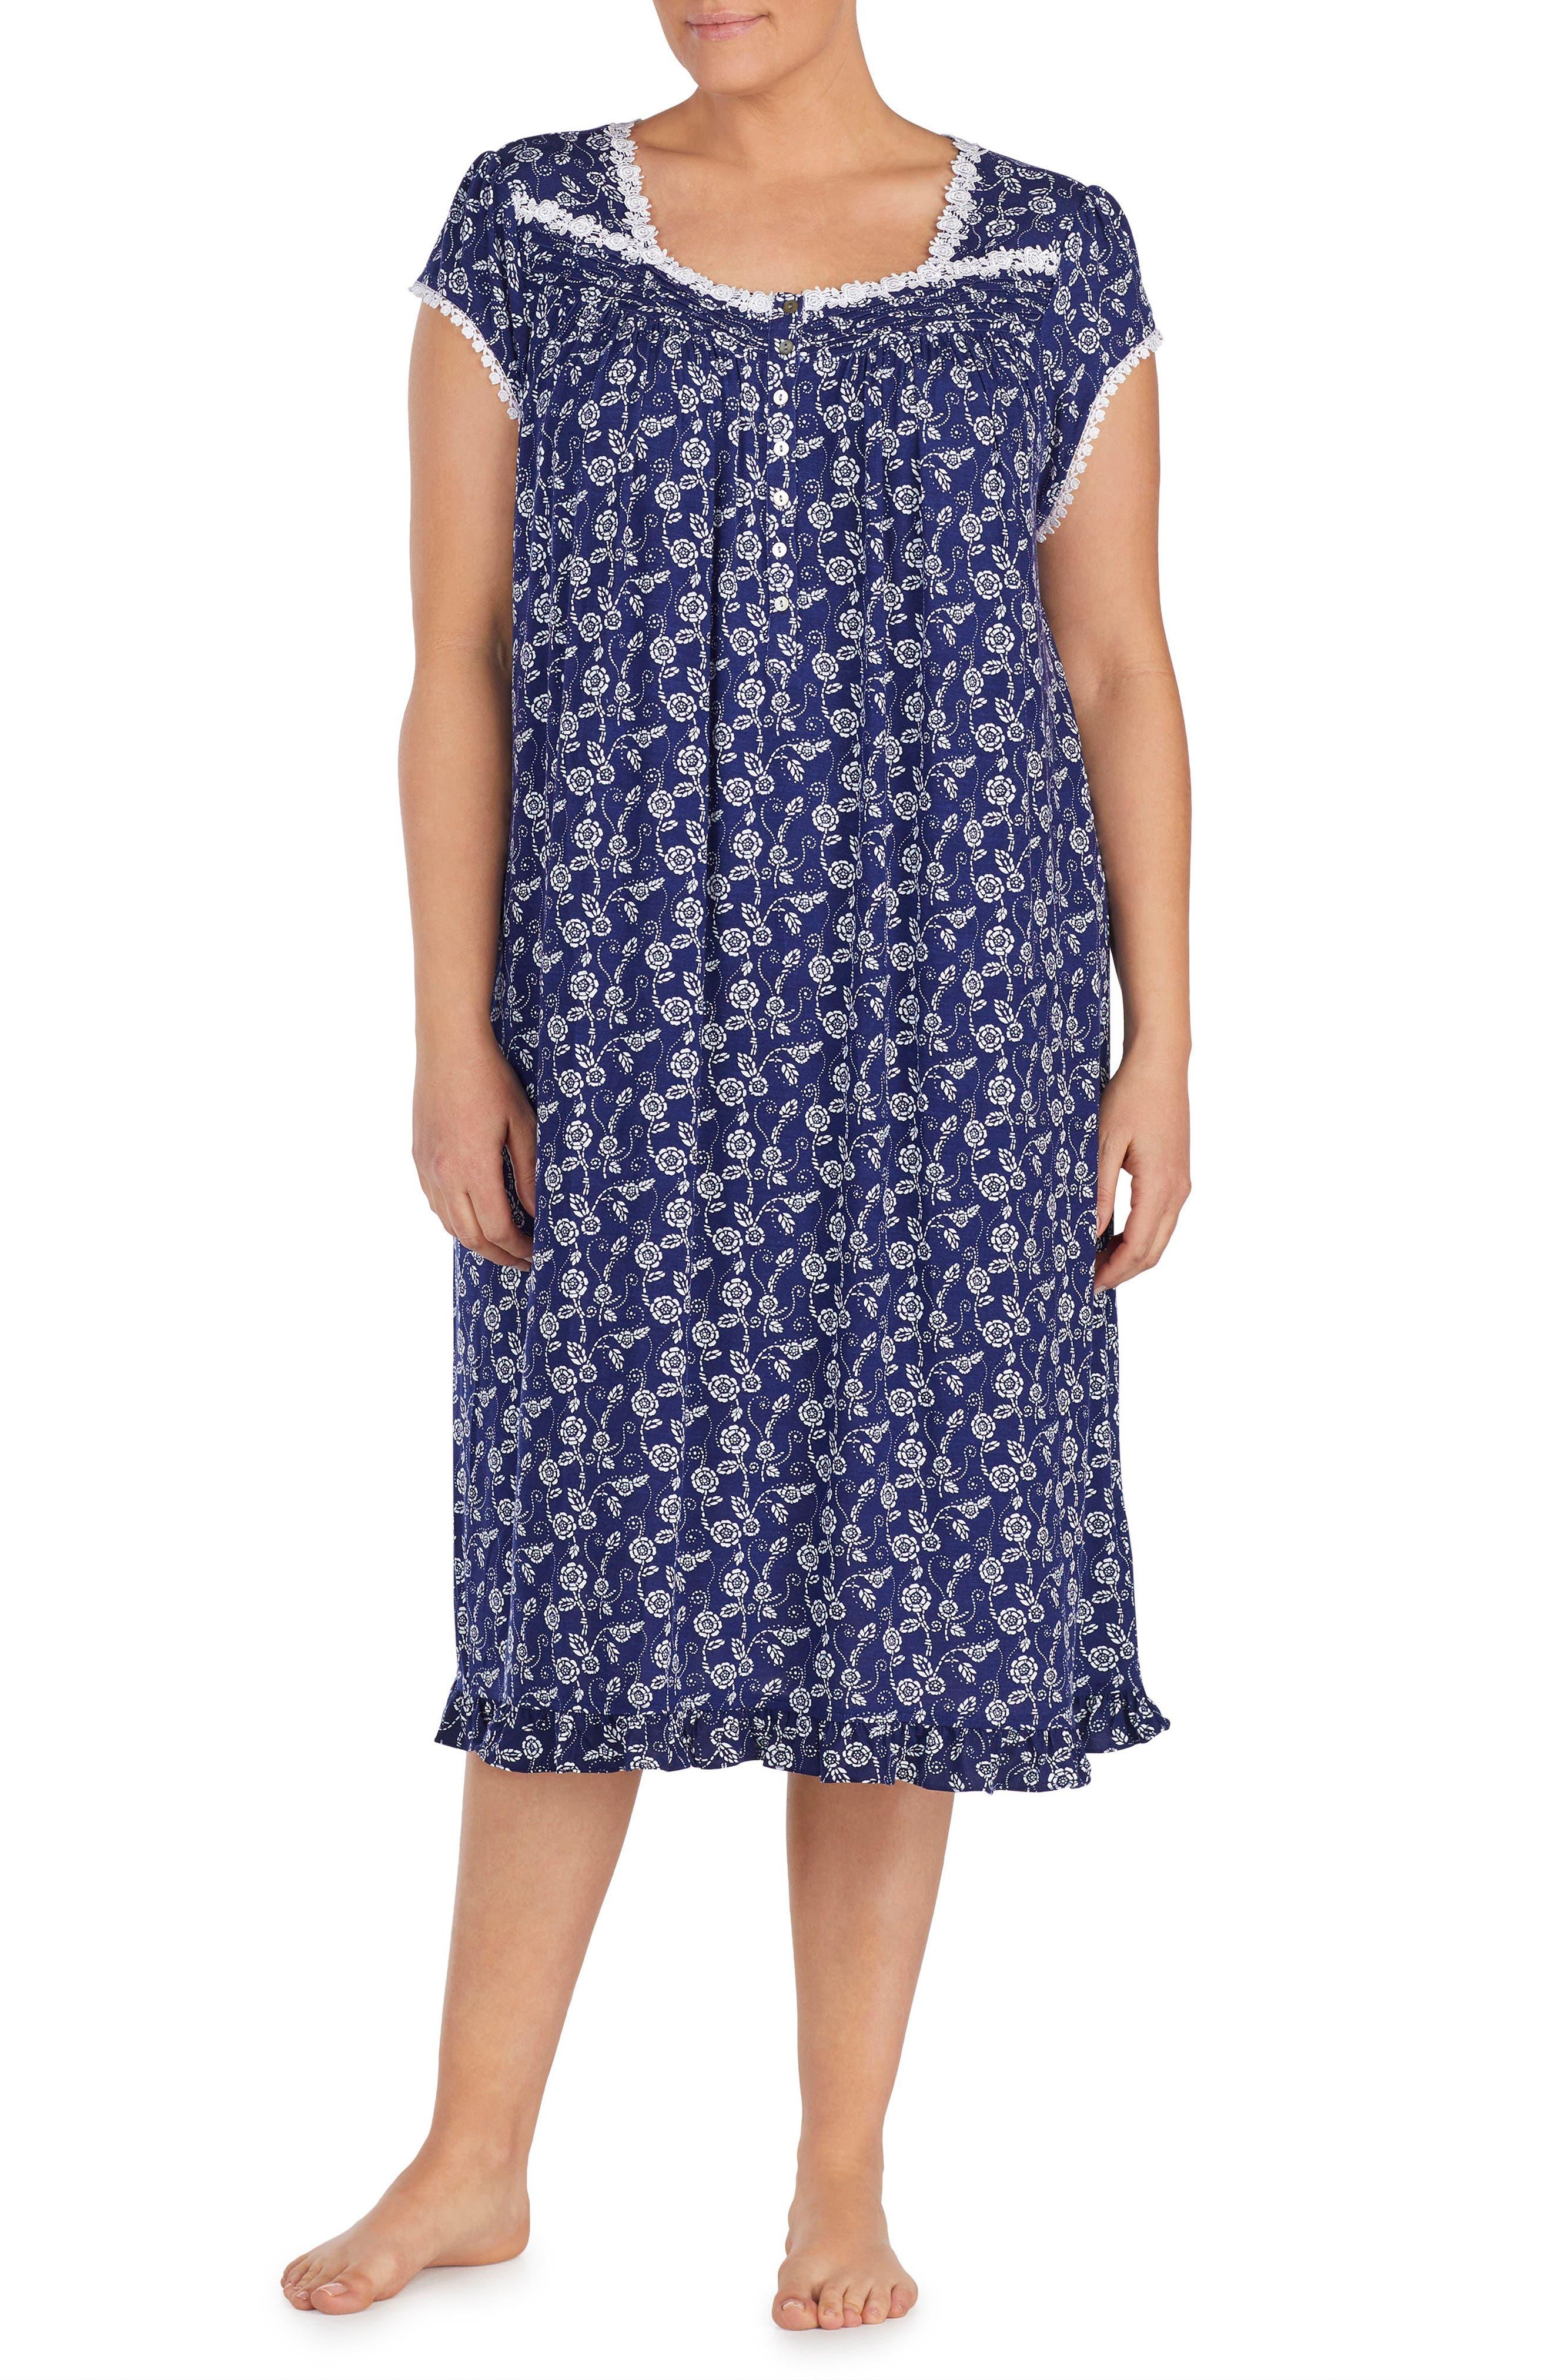 Alternate Image 1 Selected - Eileen West Print Nightgown (Plus Size)